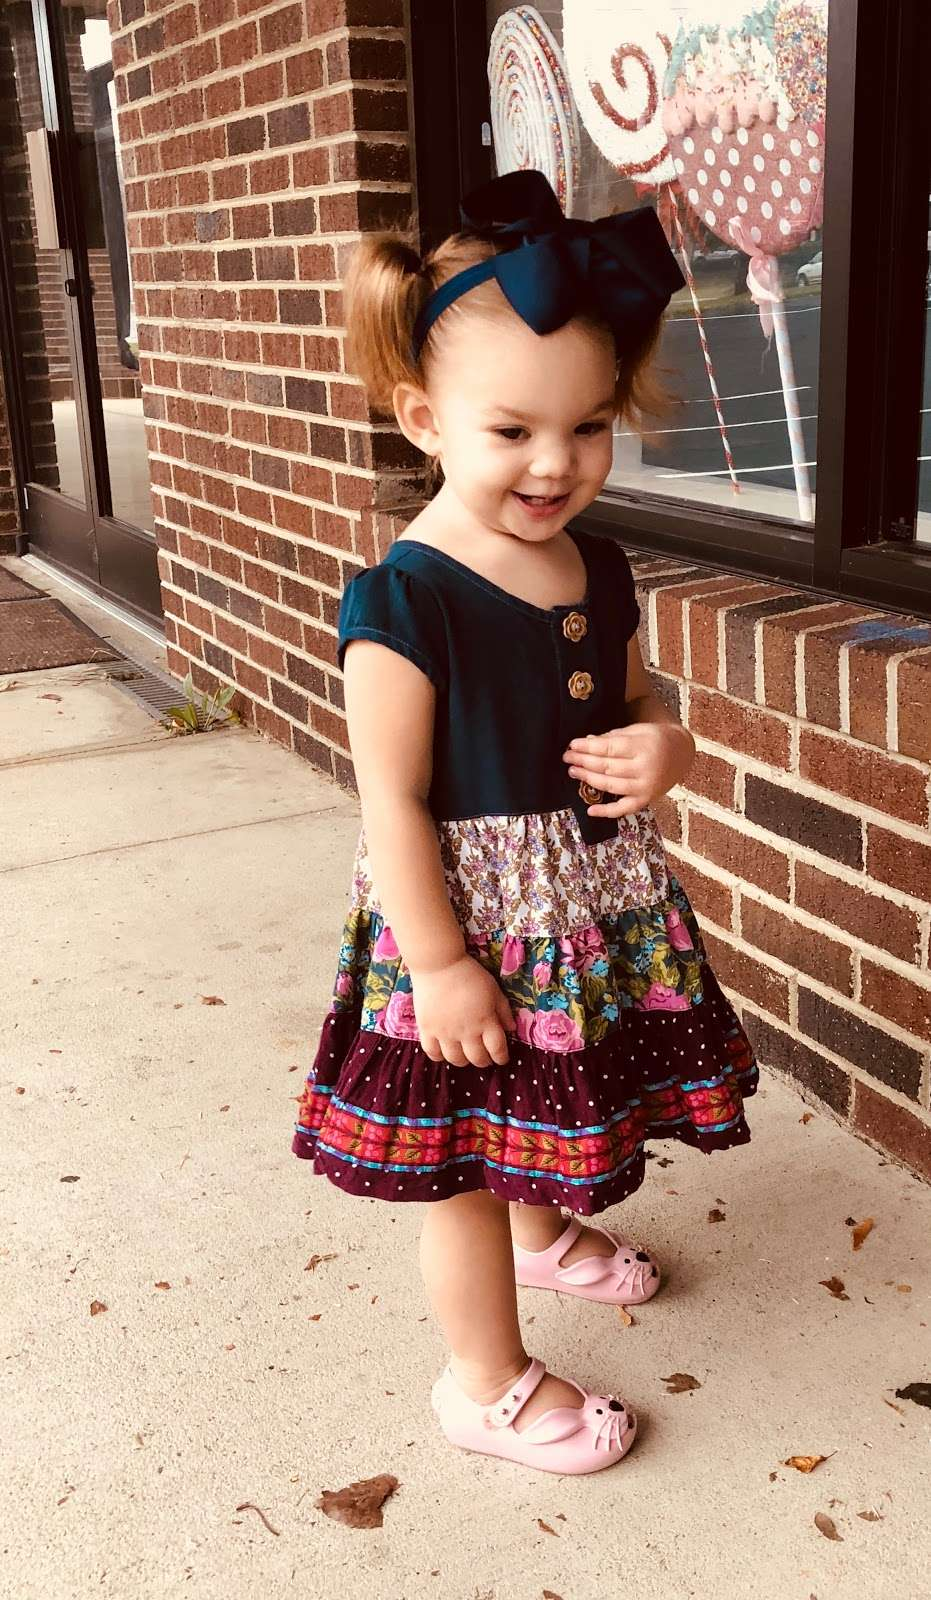 Lollipop Kids Consignment - clothing store    Photo 5 of 5   Address: 1776 N Center St ste a, Hickory, NC 28601, USA   Phone: (828) 569-1566